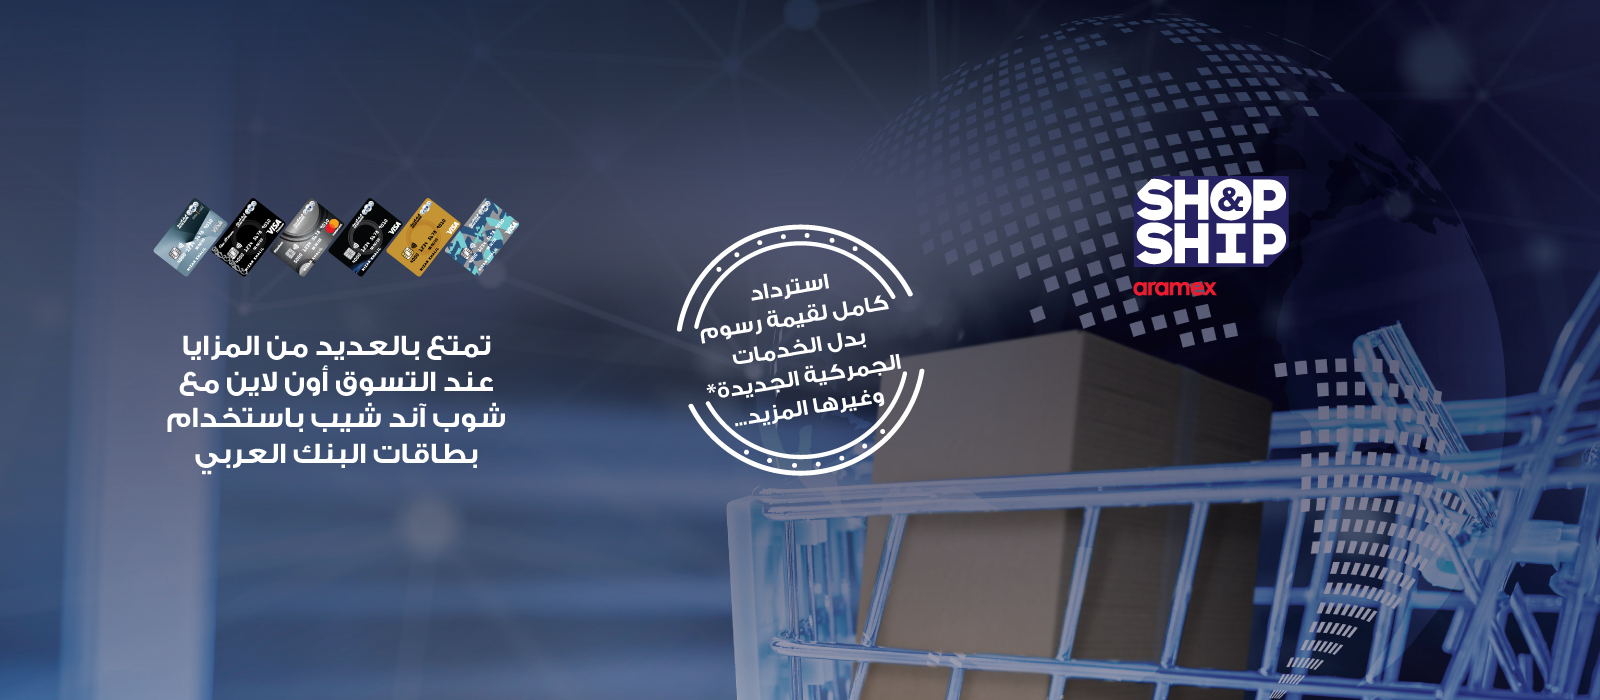 New-Website-Banner-1600x700-amend3-A